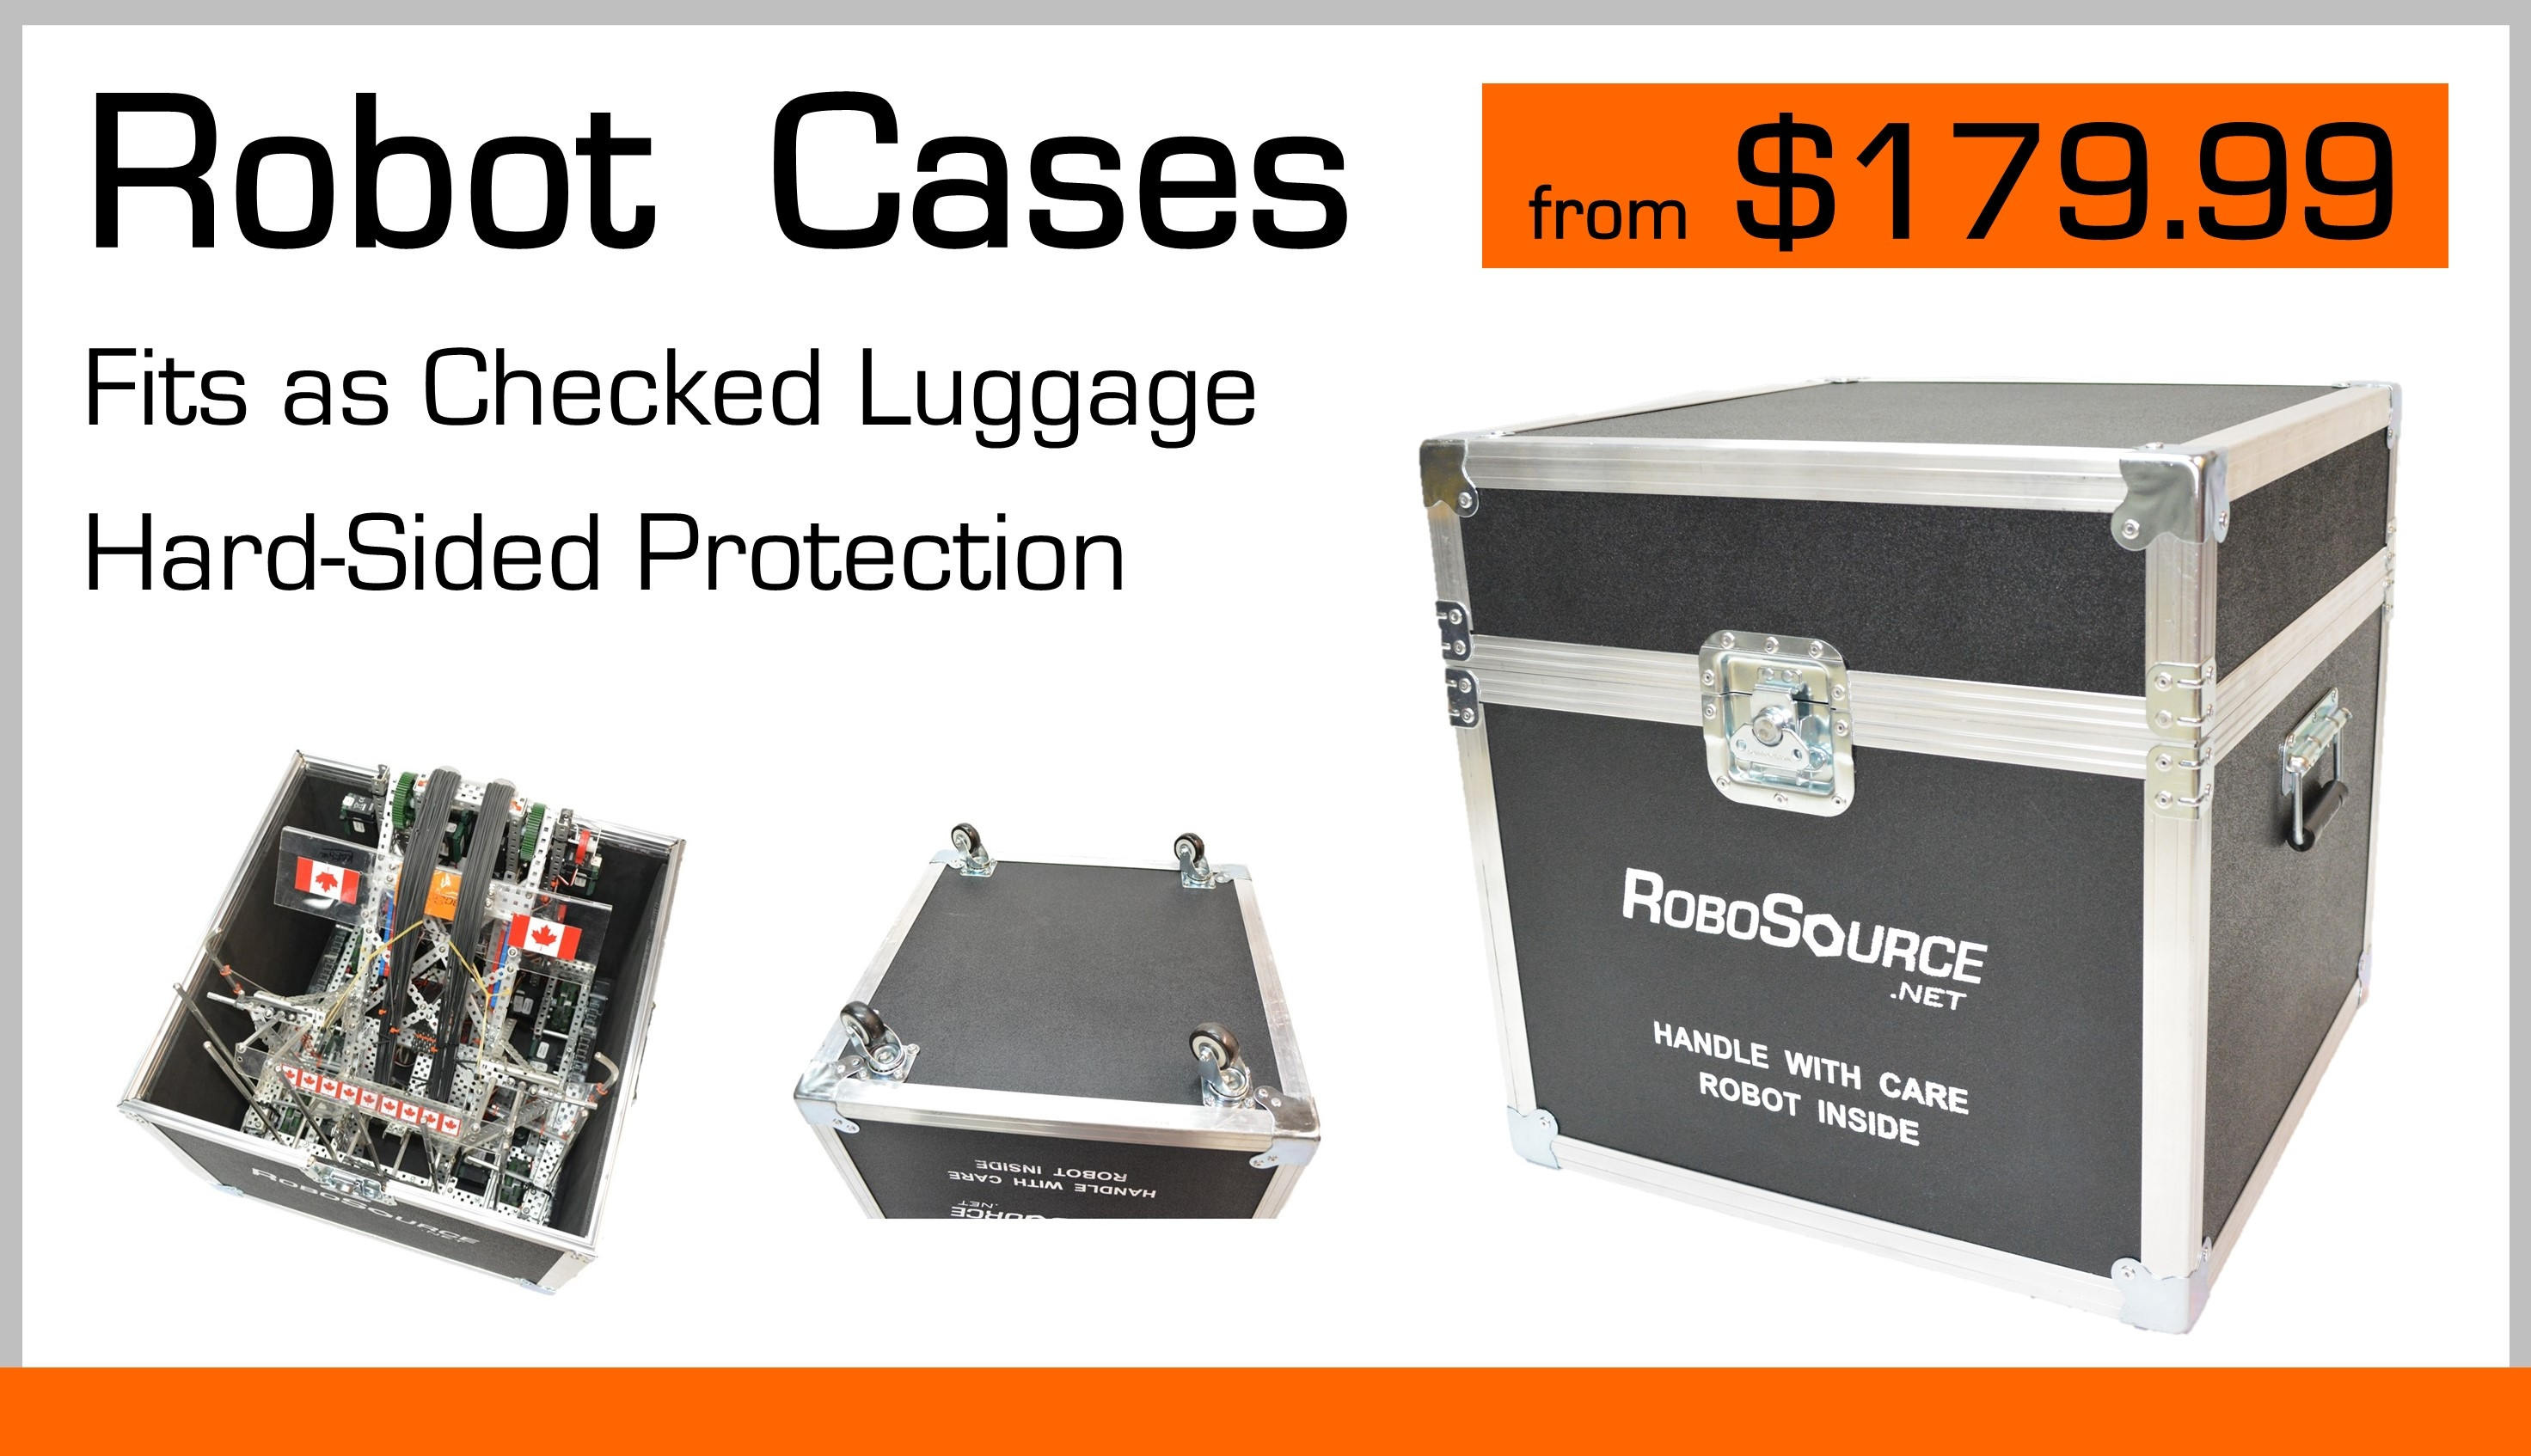 Robosource Robot Cases from $179.99